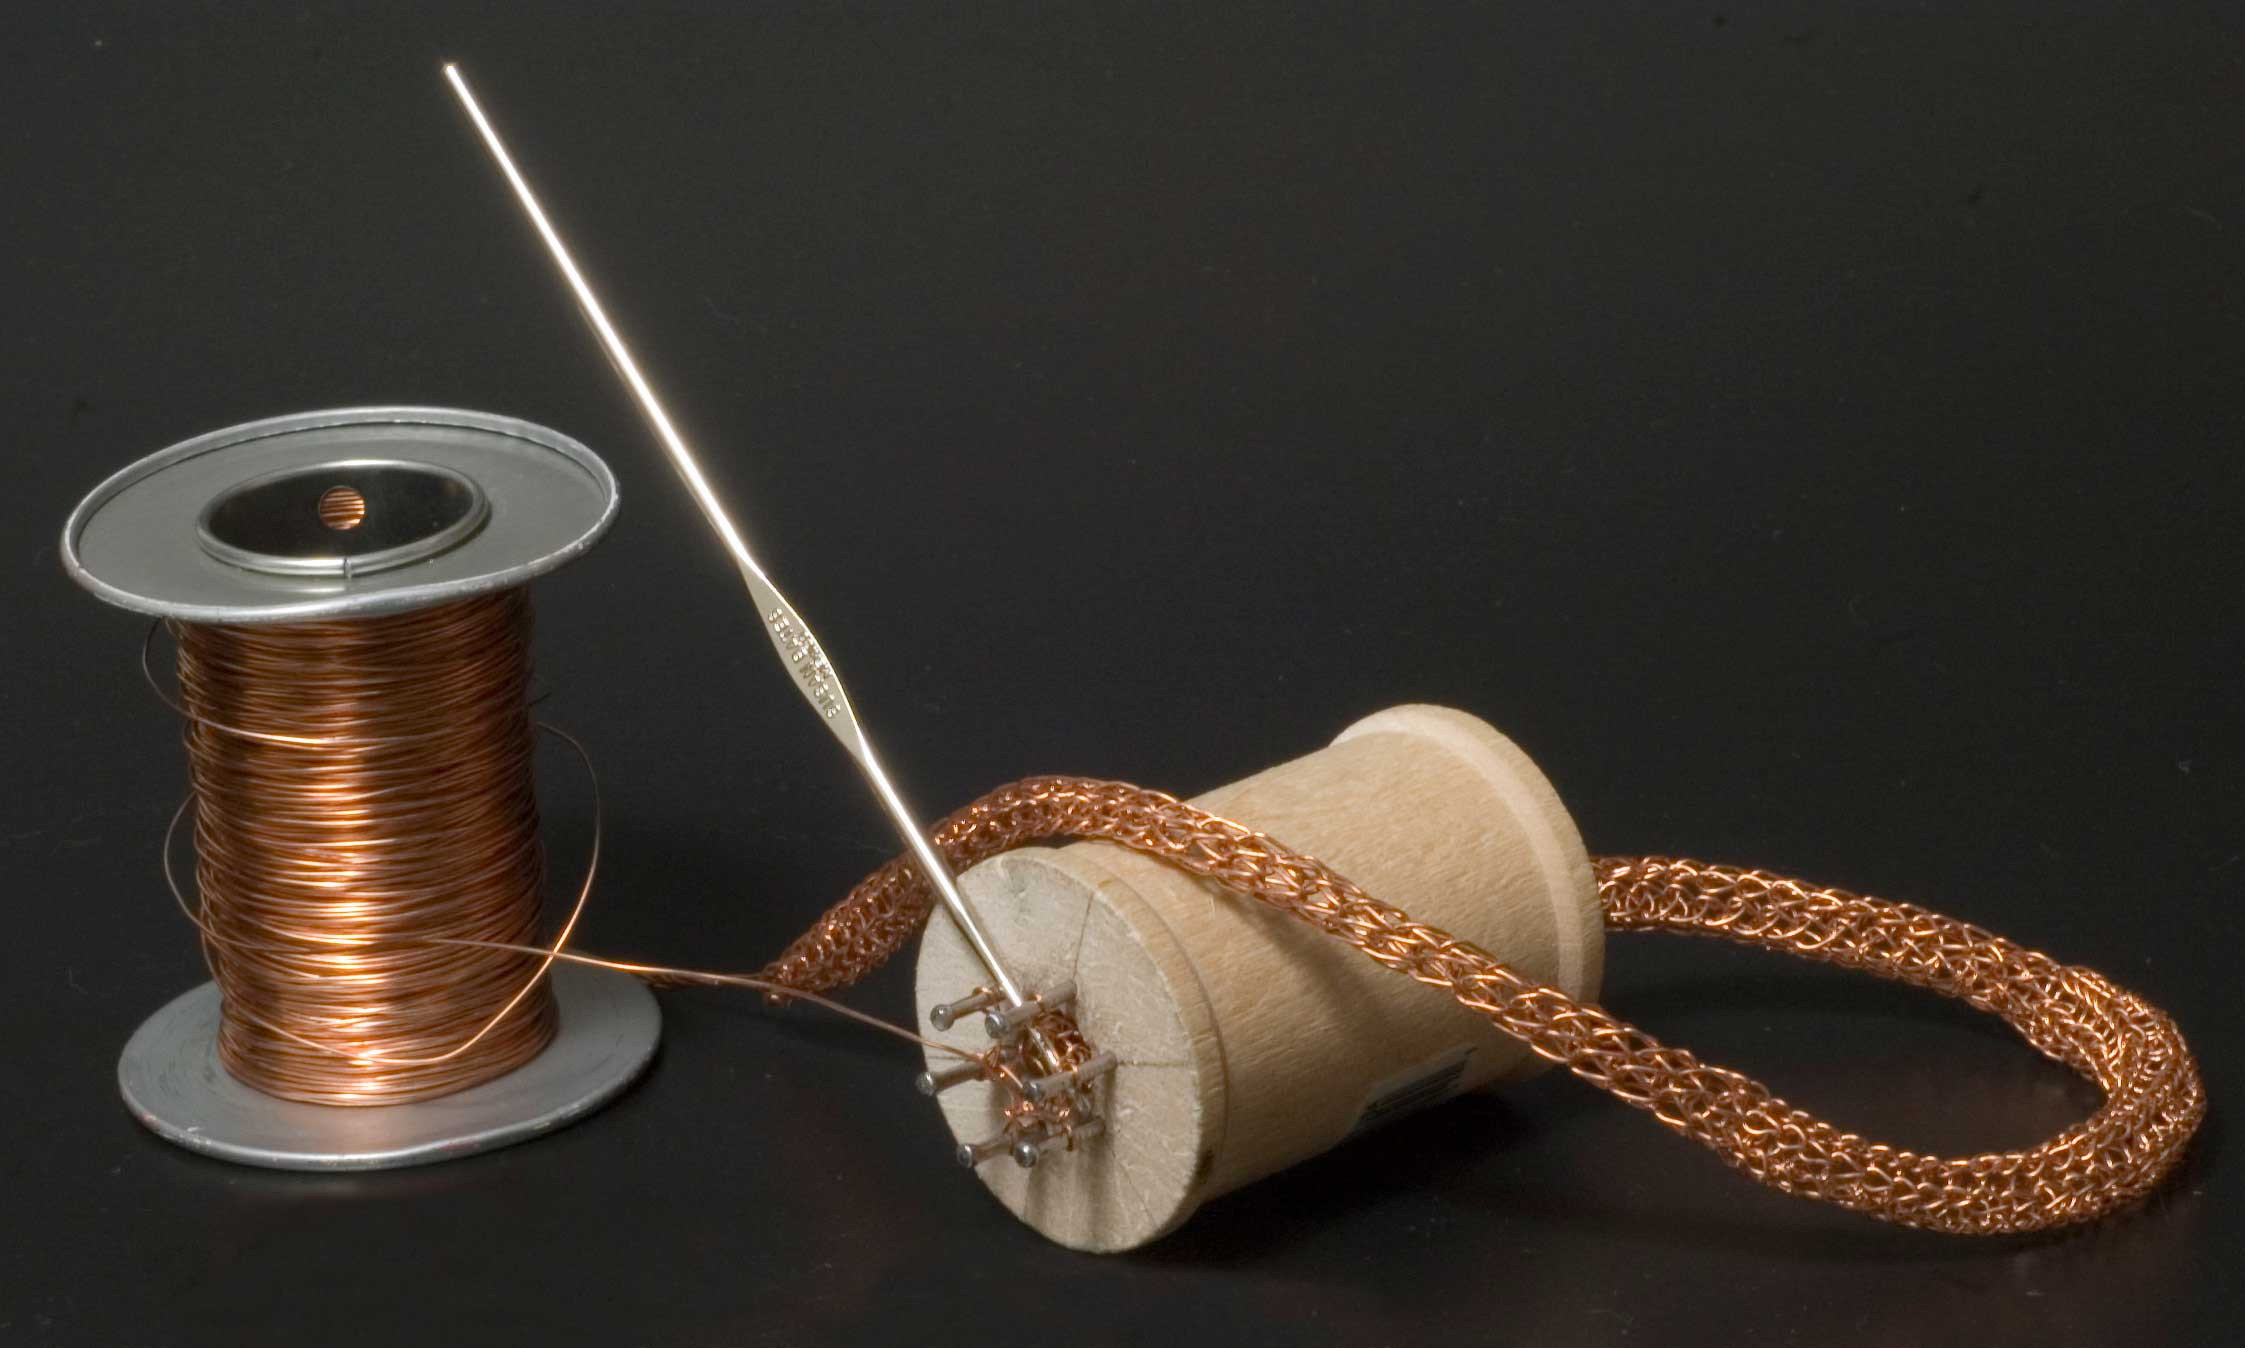 Make a Wire Knitting Spool